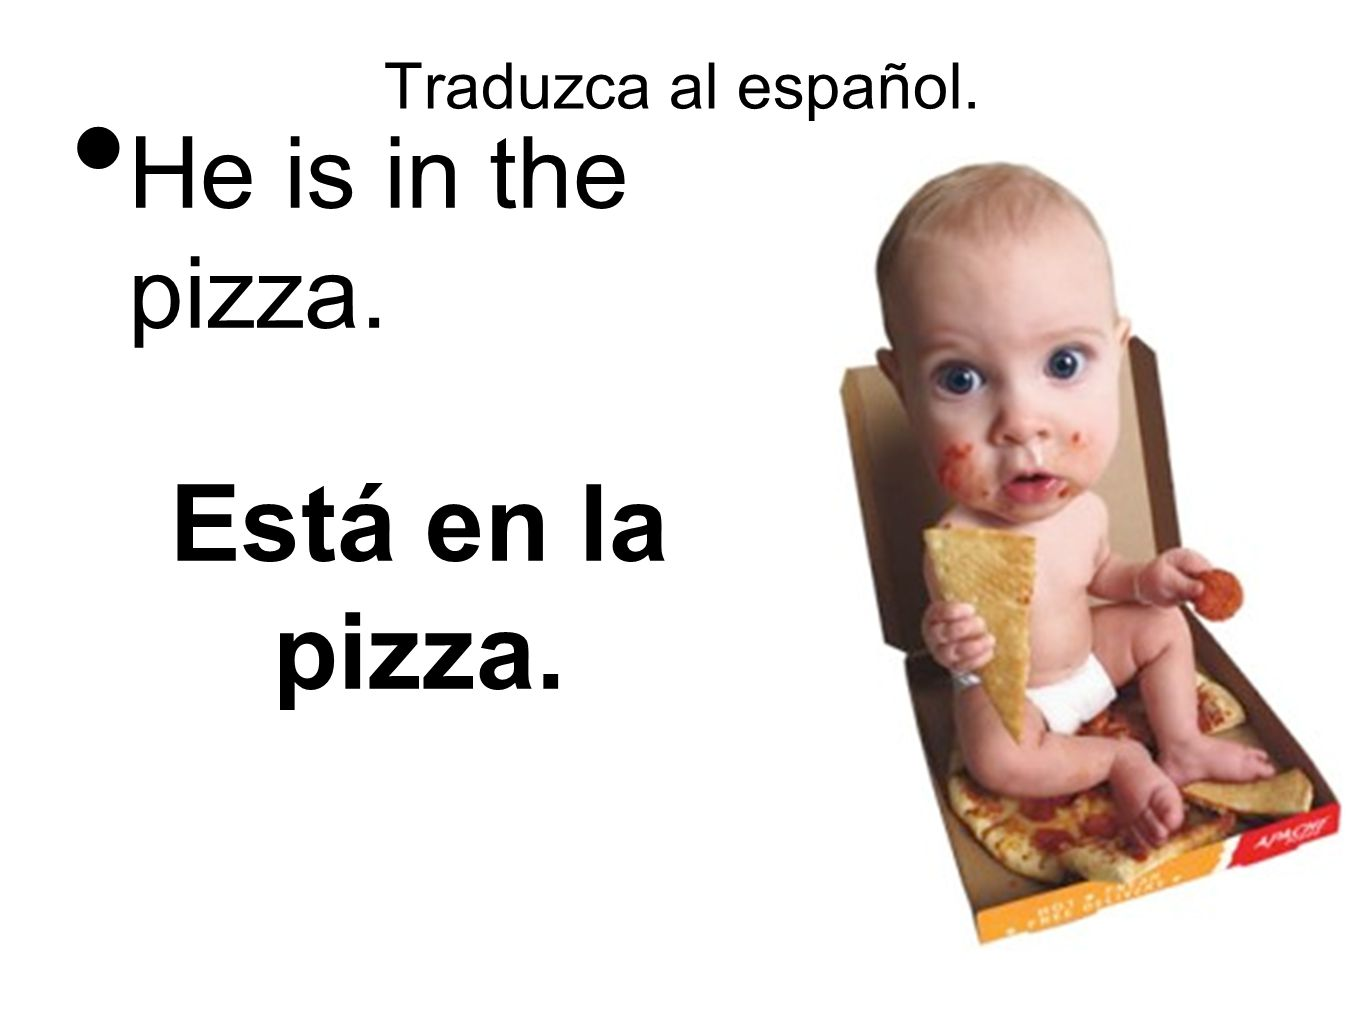 Traduzca al español. He is in the pizza. Está en la pizza.